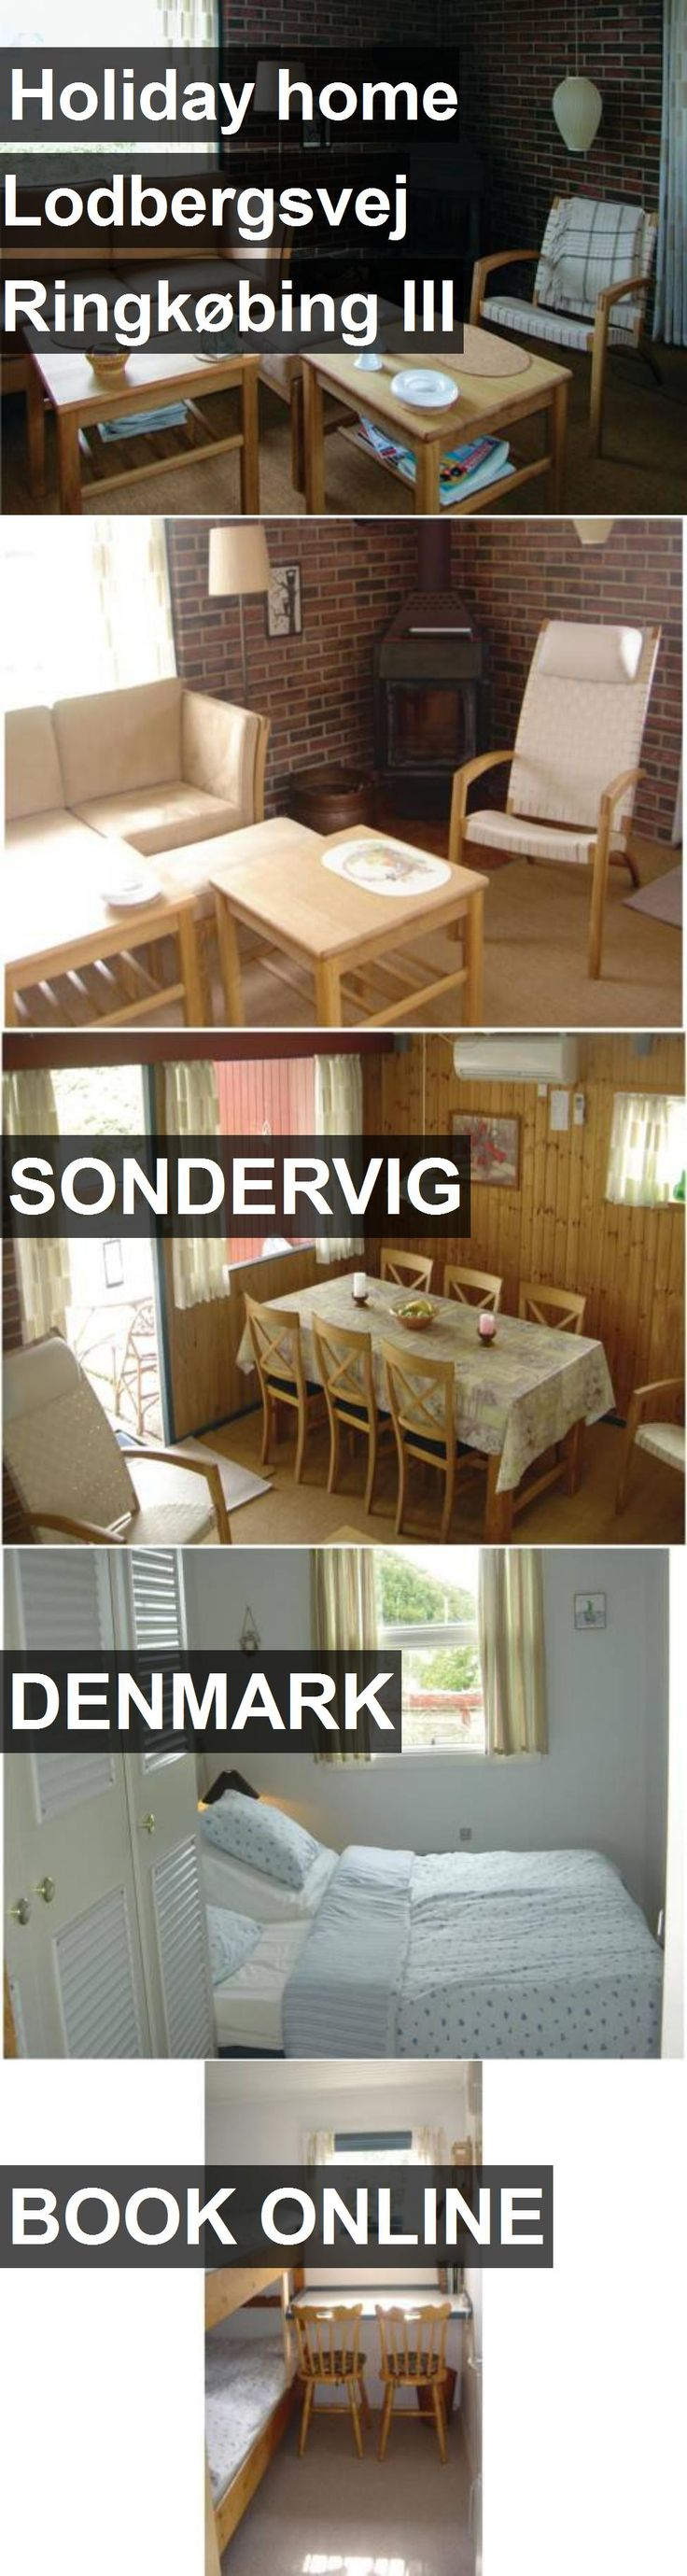 Hotel Holiday home Lodbergsvej Ringkøbing III in Sondervig, Denmark. For more information, photos, reviews and best prices please follow the link. #Denmark #Sondervig #travel #vacation #hotel